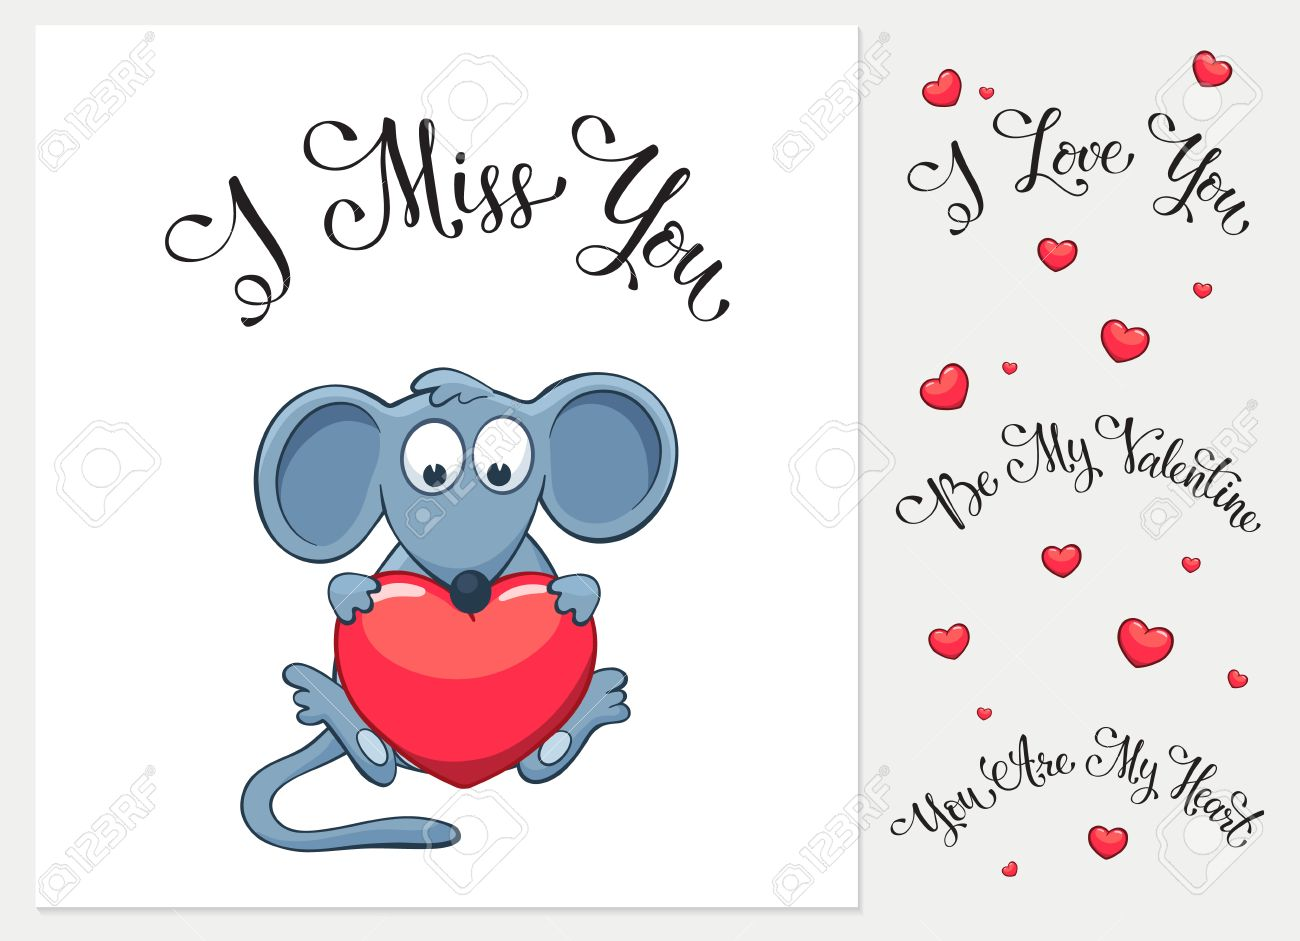 Engaging Heart I Love You I Miss You Be My Valentine You Are My Heart Ny Greeting Card Miss You Ny Messages Miss You Ny Text 51706165 Cartoon Mouse inspiration Miss You Funny